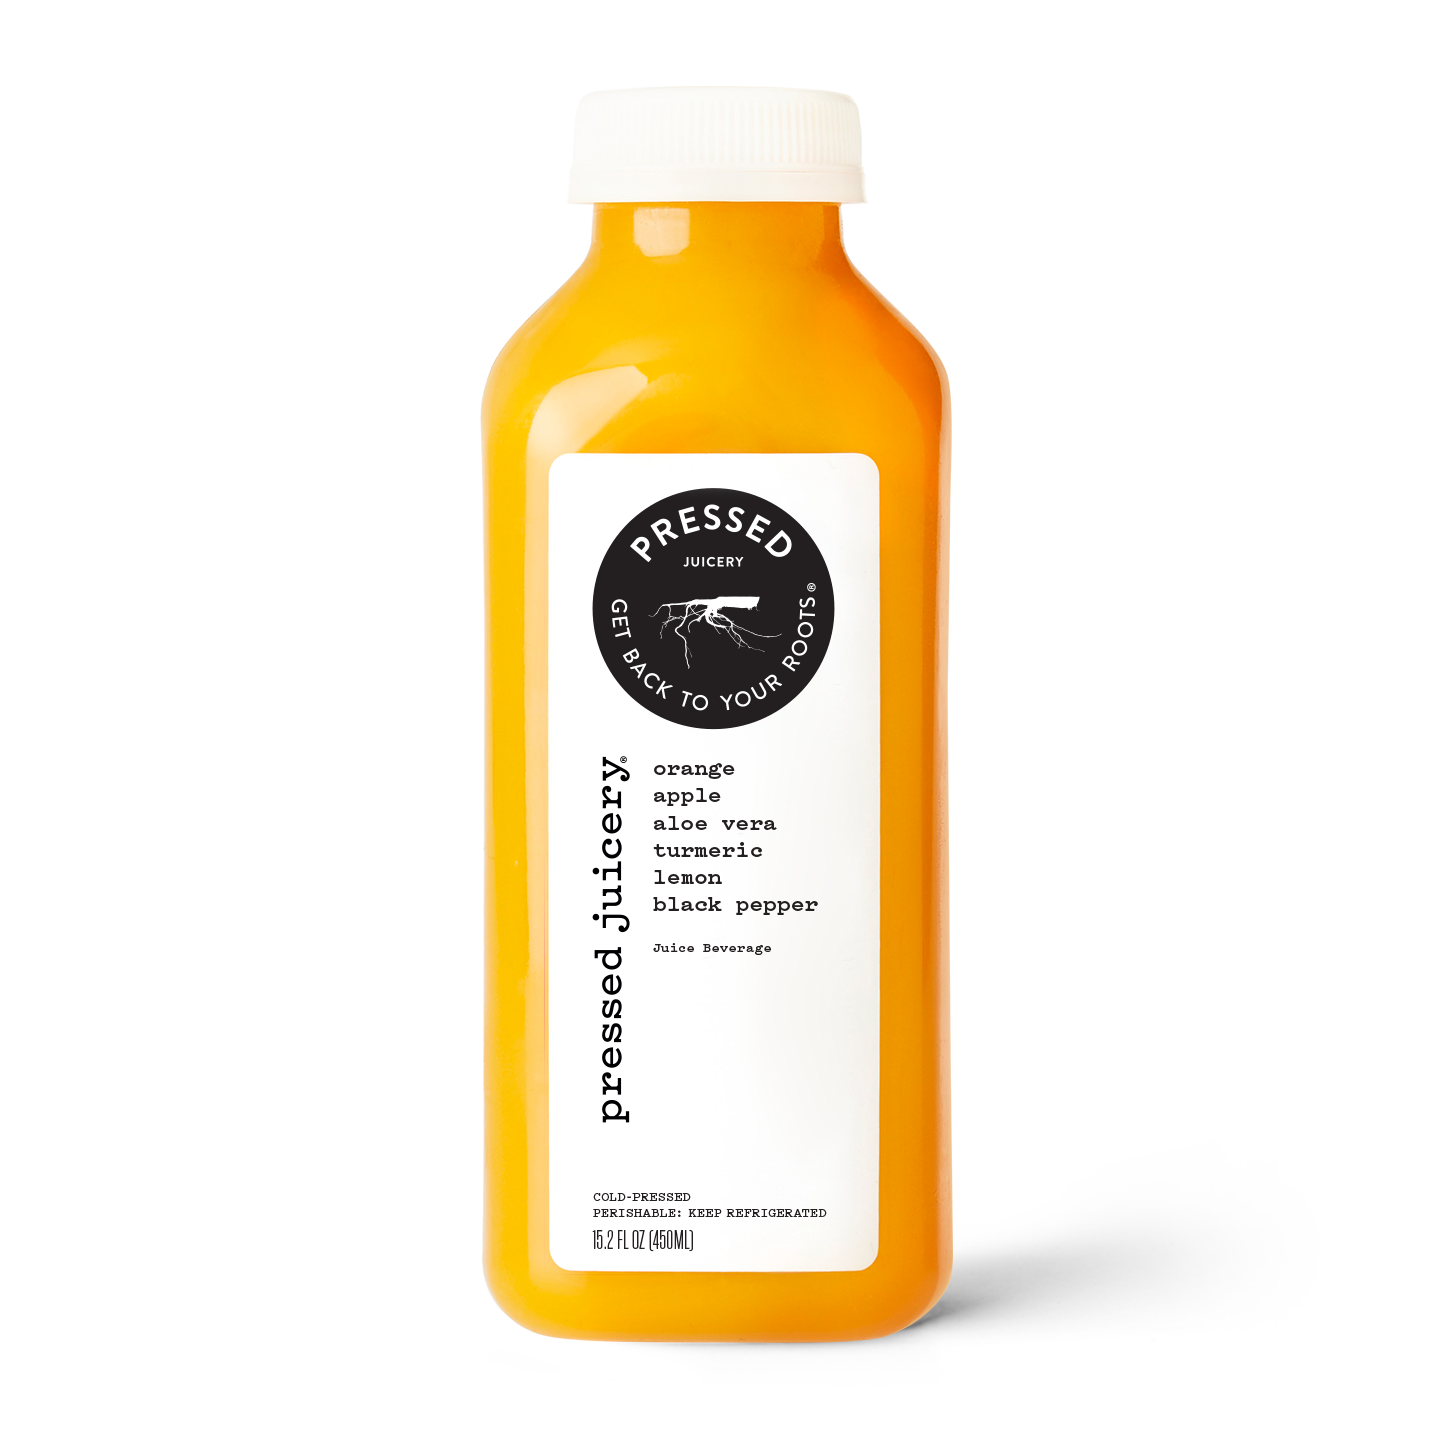 Orange Turmeric Apple Lemon Juice product image